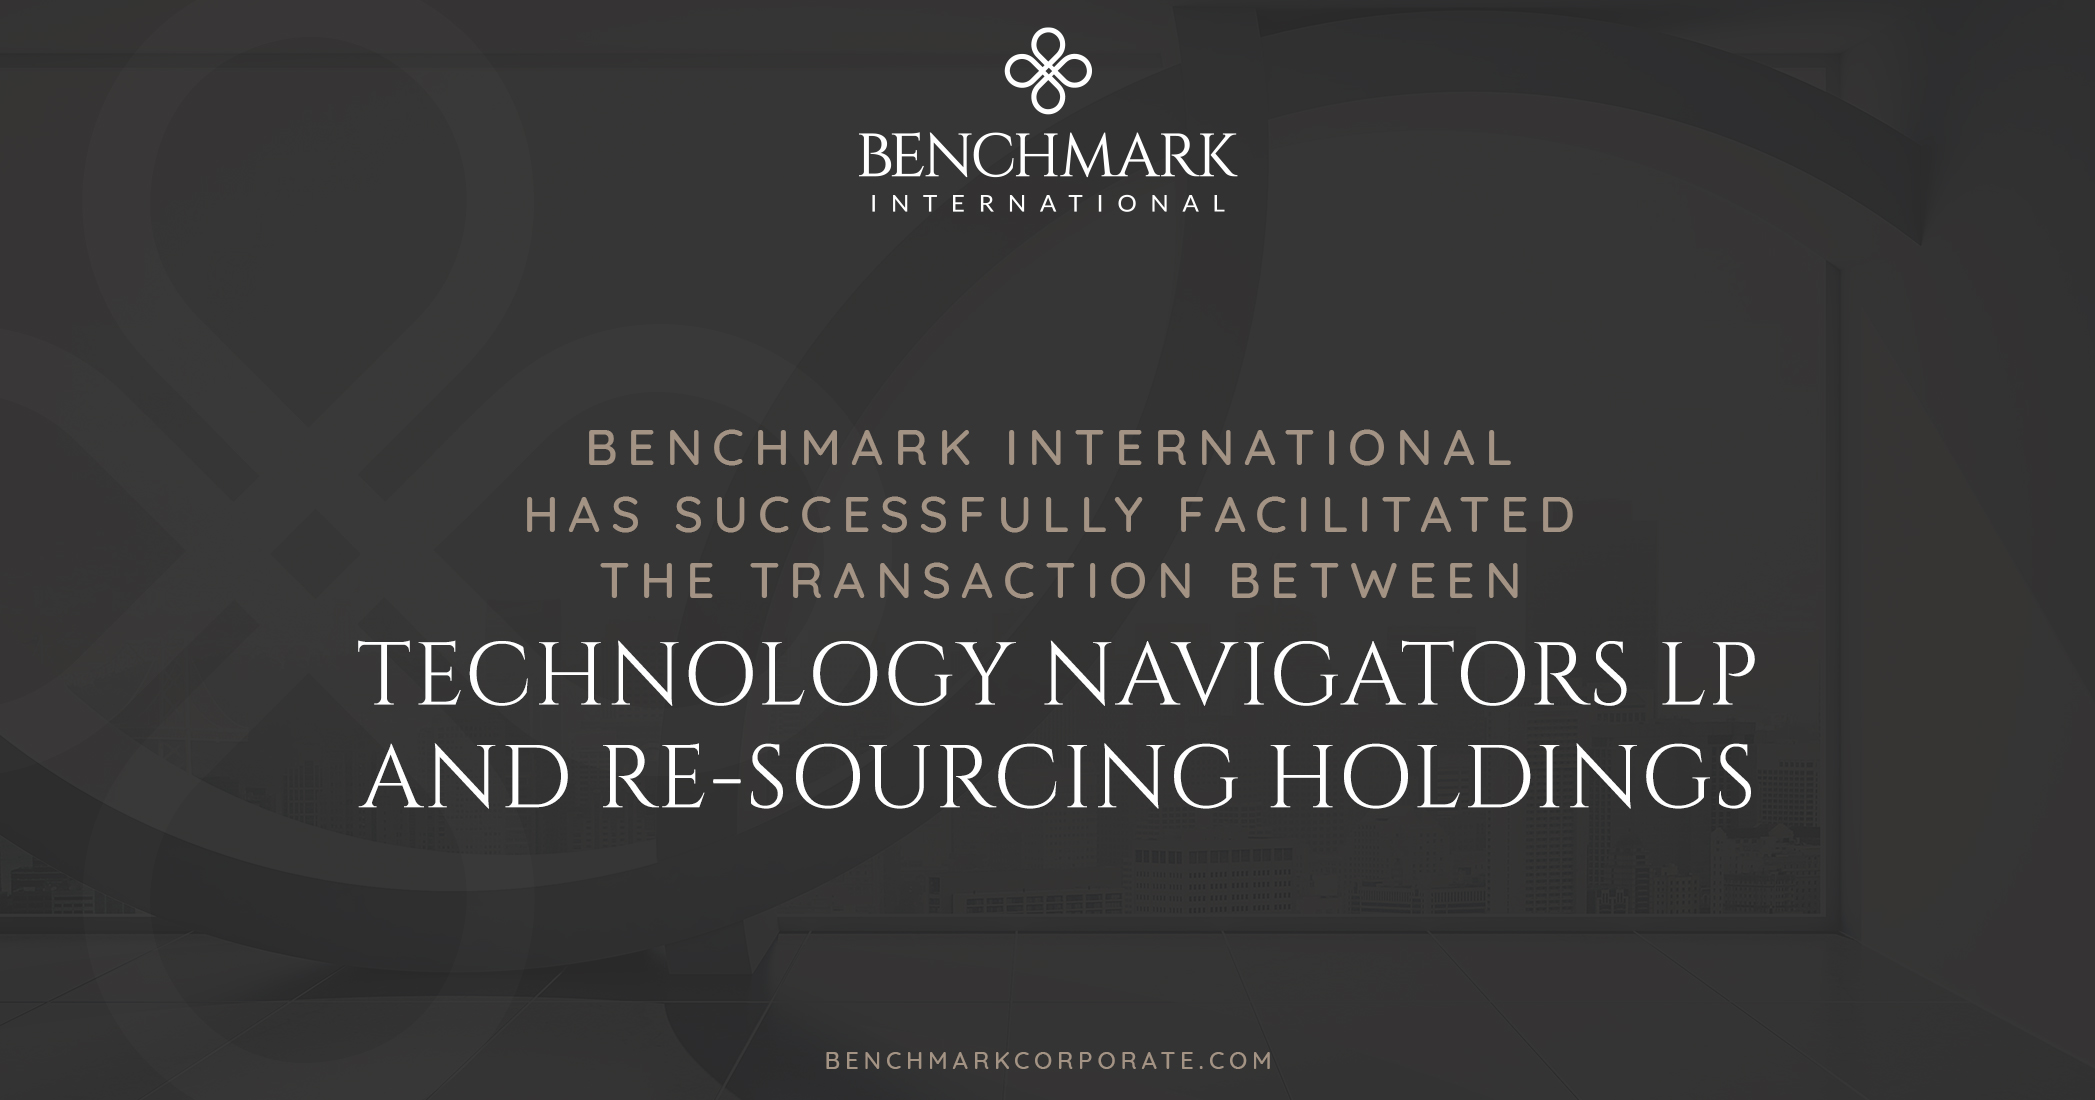 Benchmark International Successfully Facilitated the Transaction Between Technology Navigators LP and Re-Sourcing Holdings